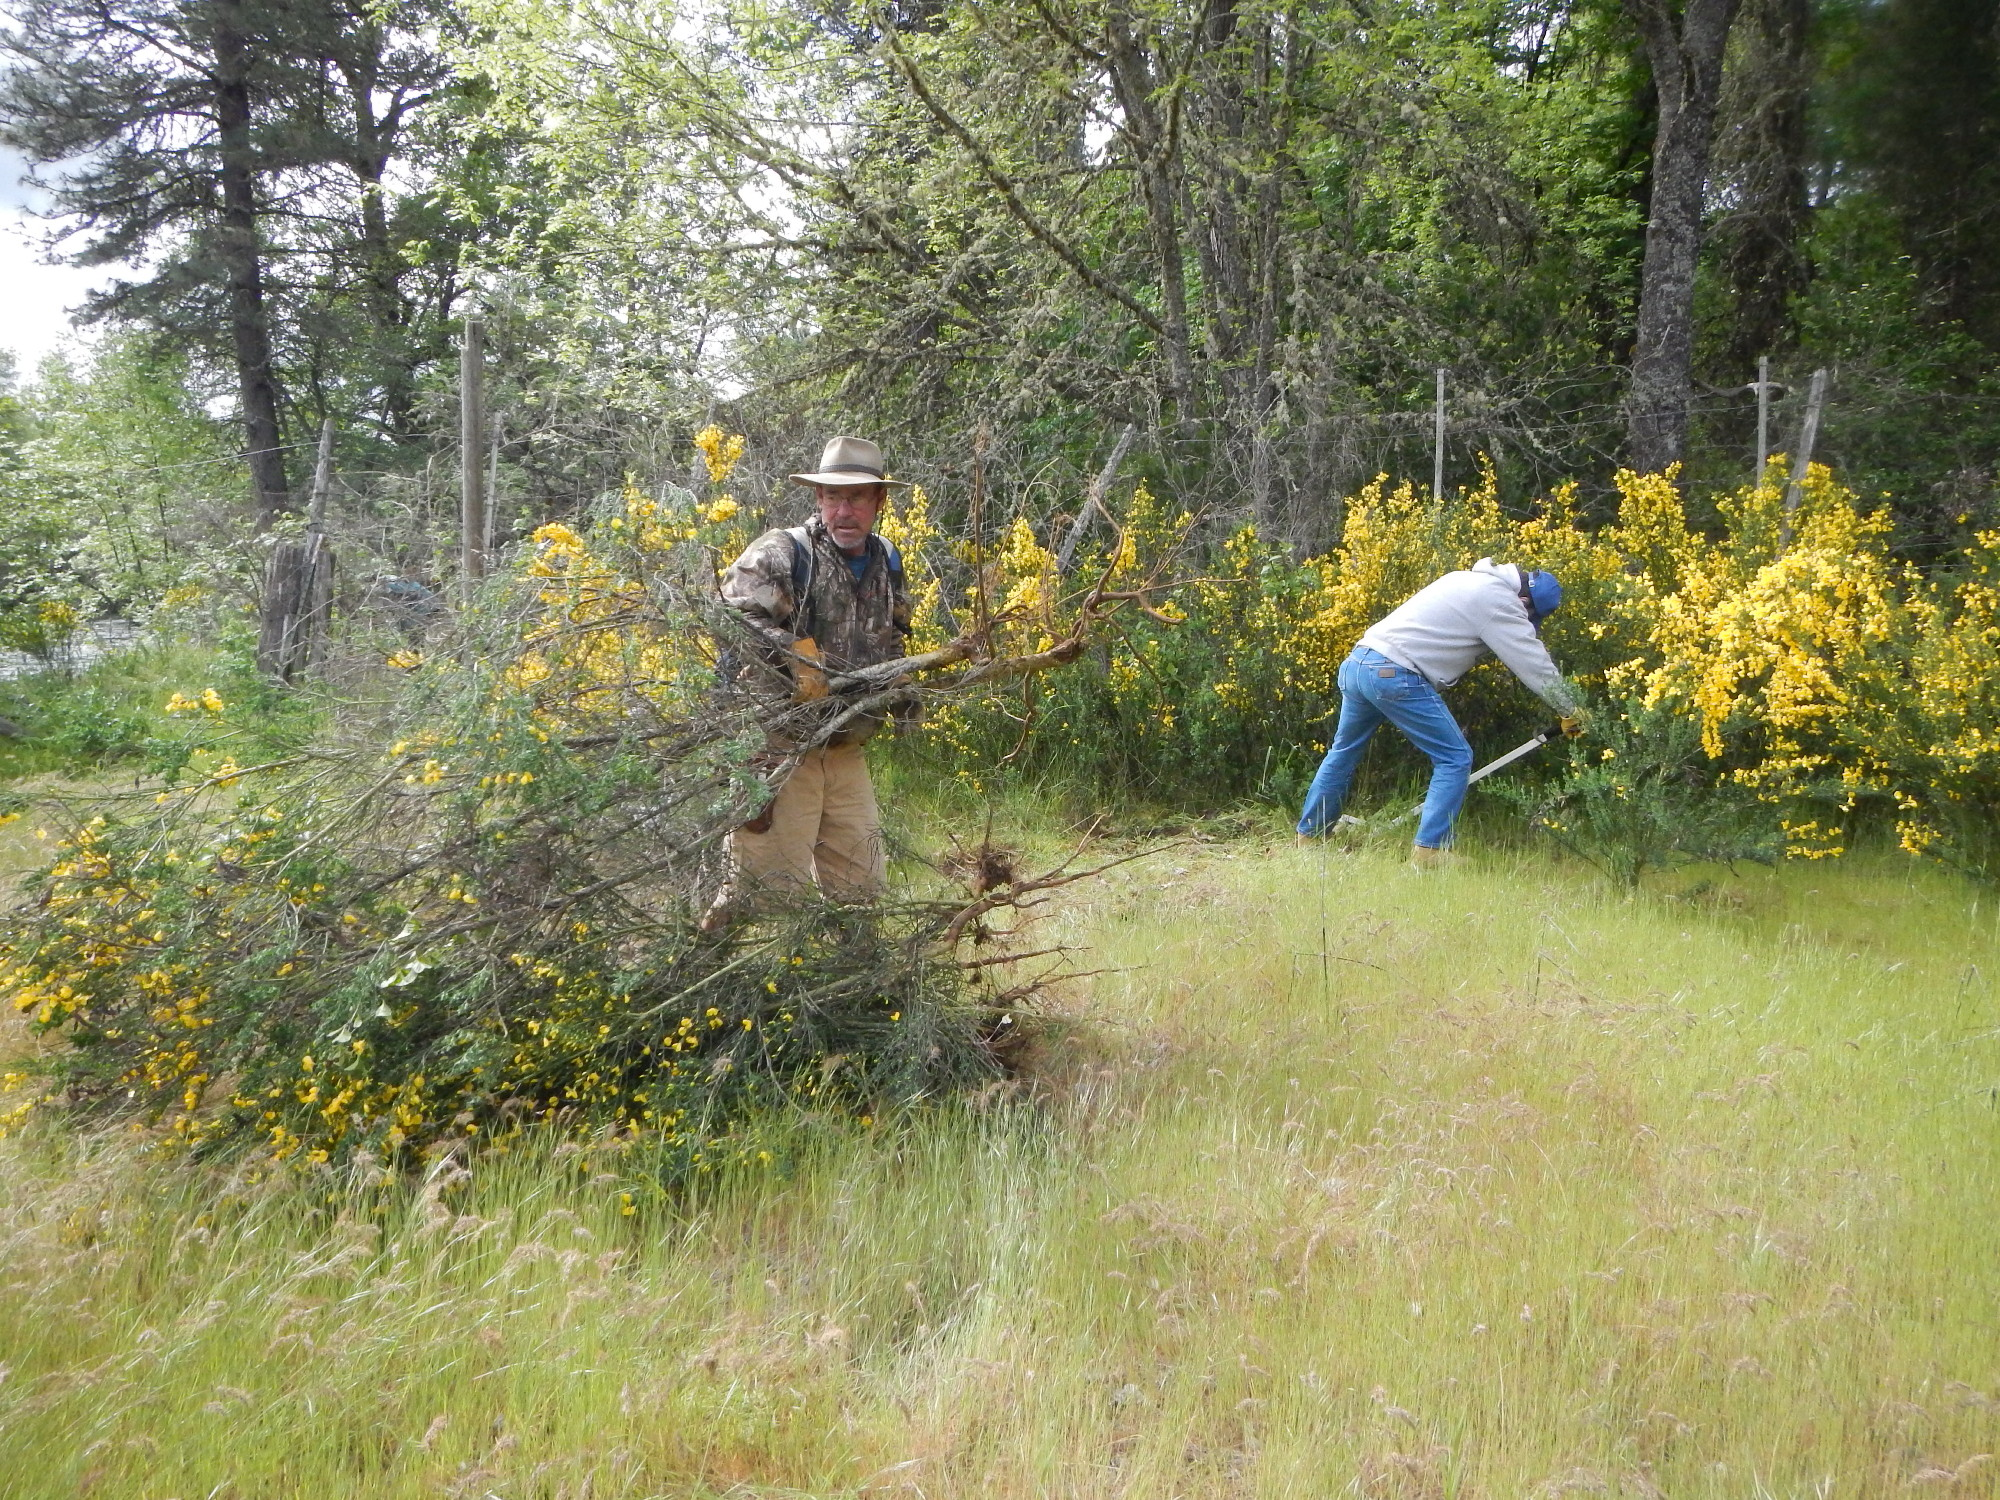 Doing the good work removing invasive Scotch broom, making room for more native oak trees and wildflowers.